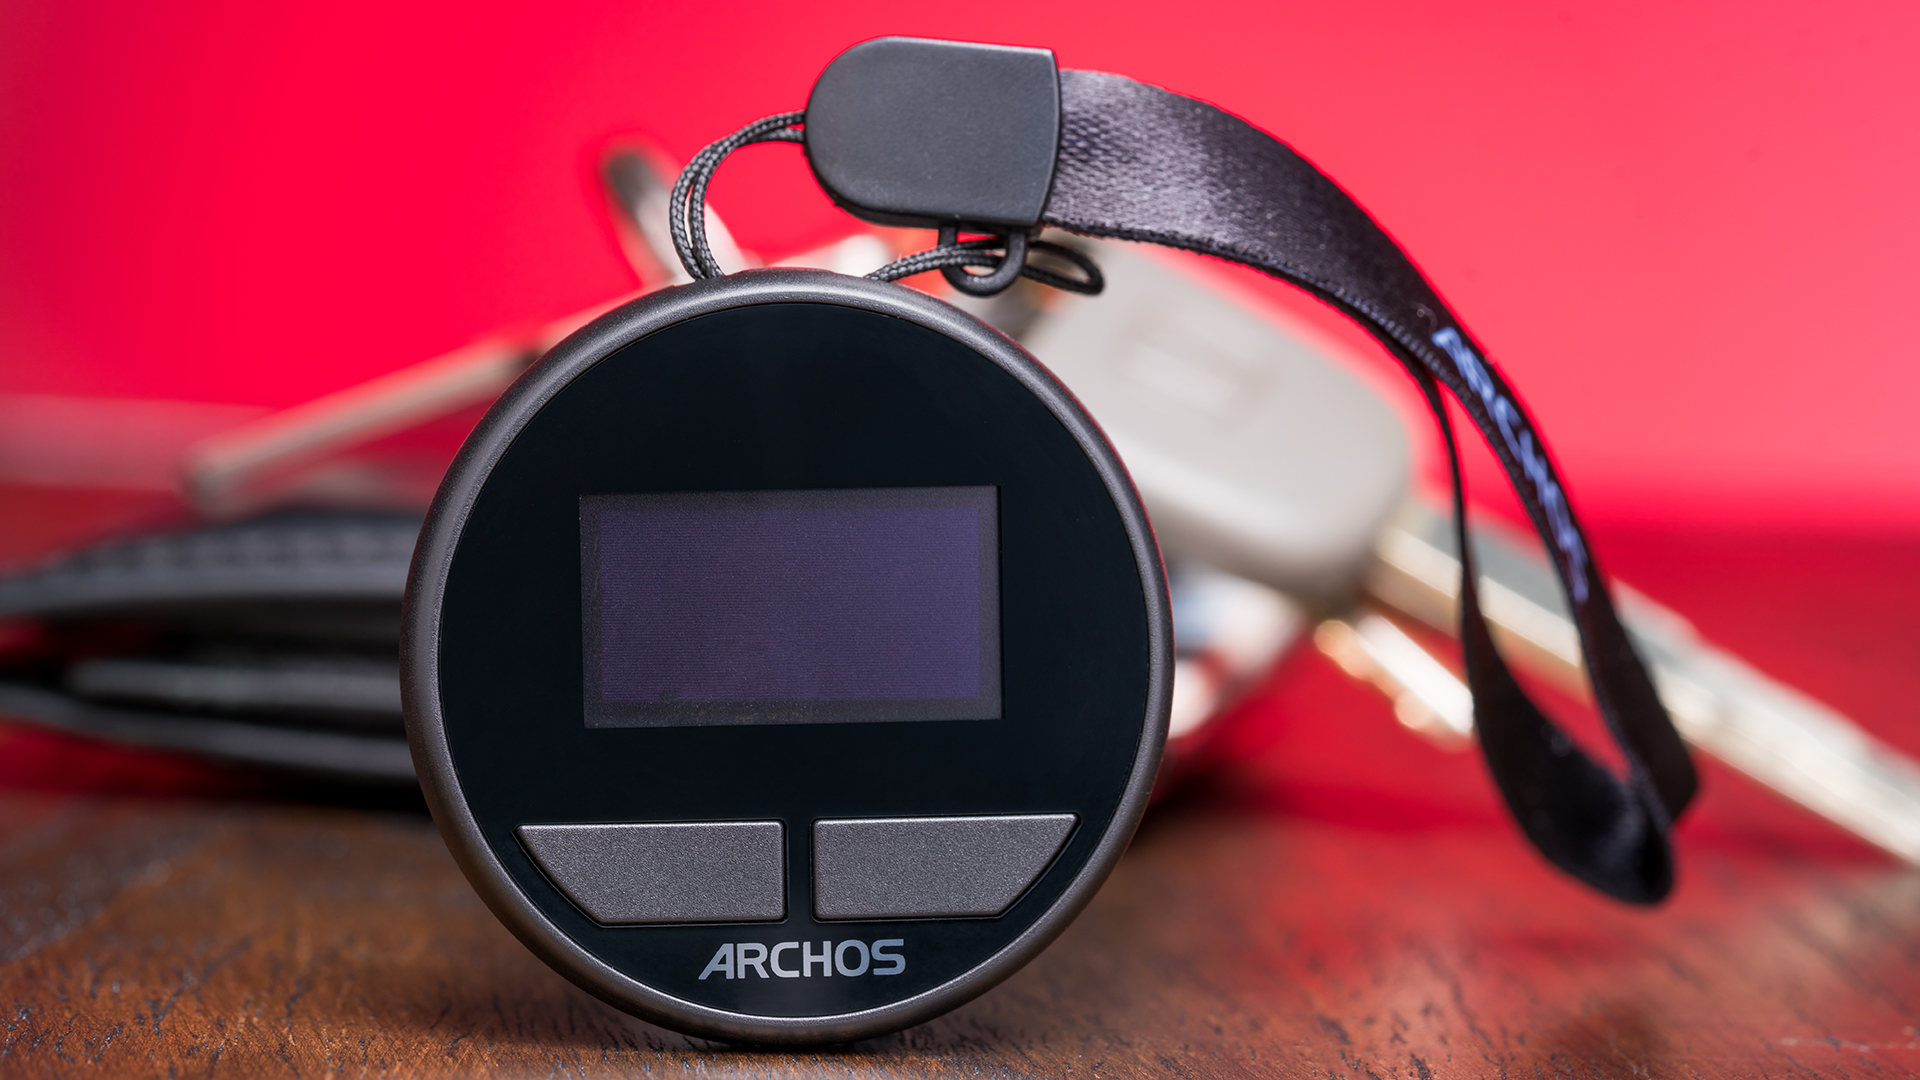 The Archos Safe-T: A Hardware Wallet to Store Your Crypto